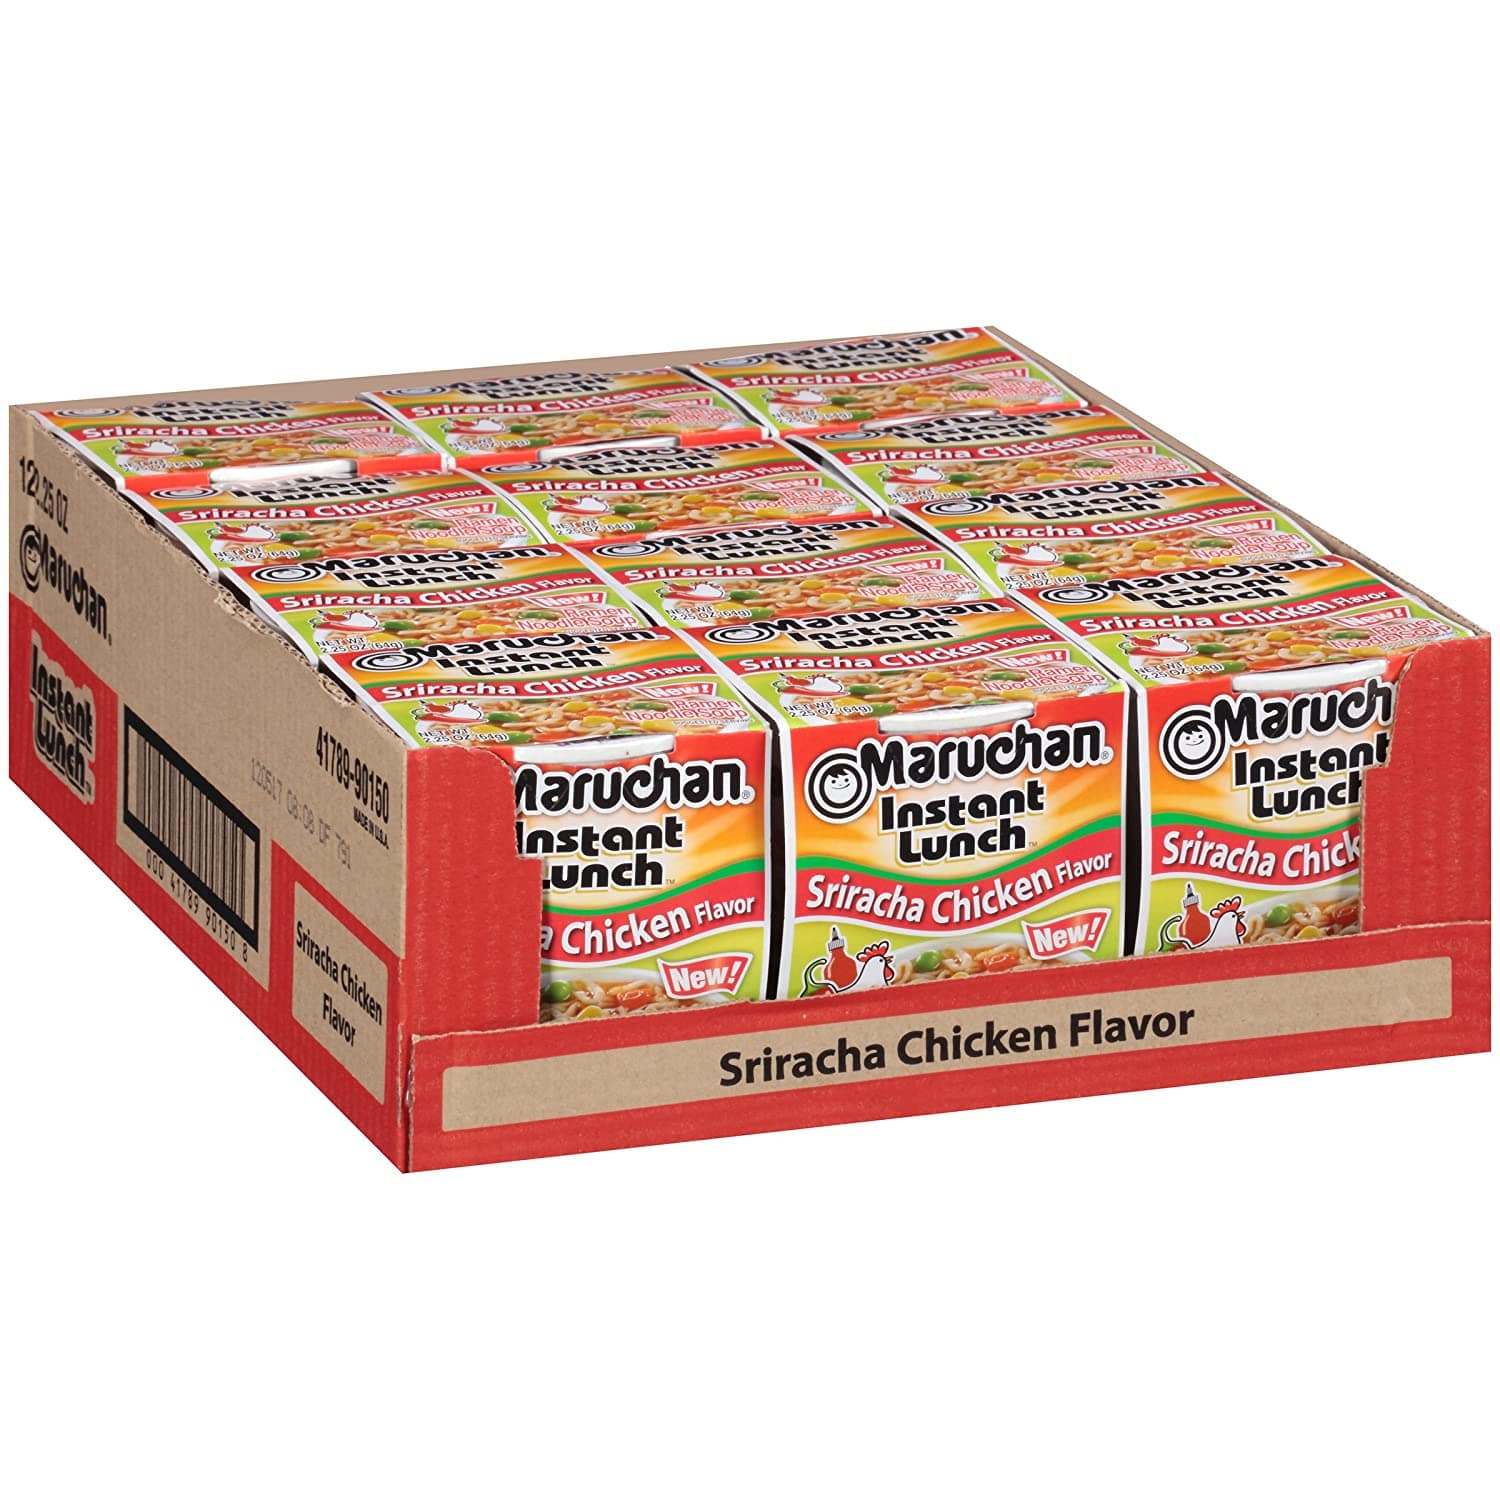 12-Pack 2.25-Oz Maruchan Instant Lunch (Sriracha Chicken) $4.45 + Free Shipping w/ Prime or $25+